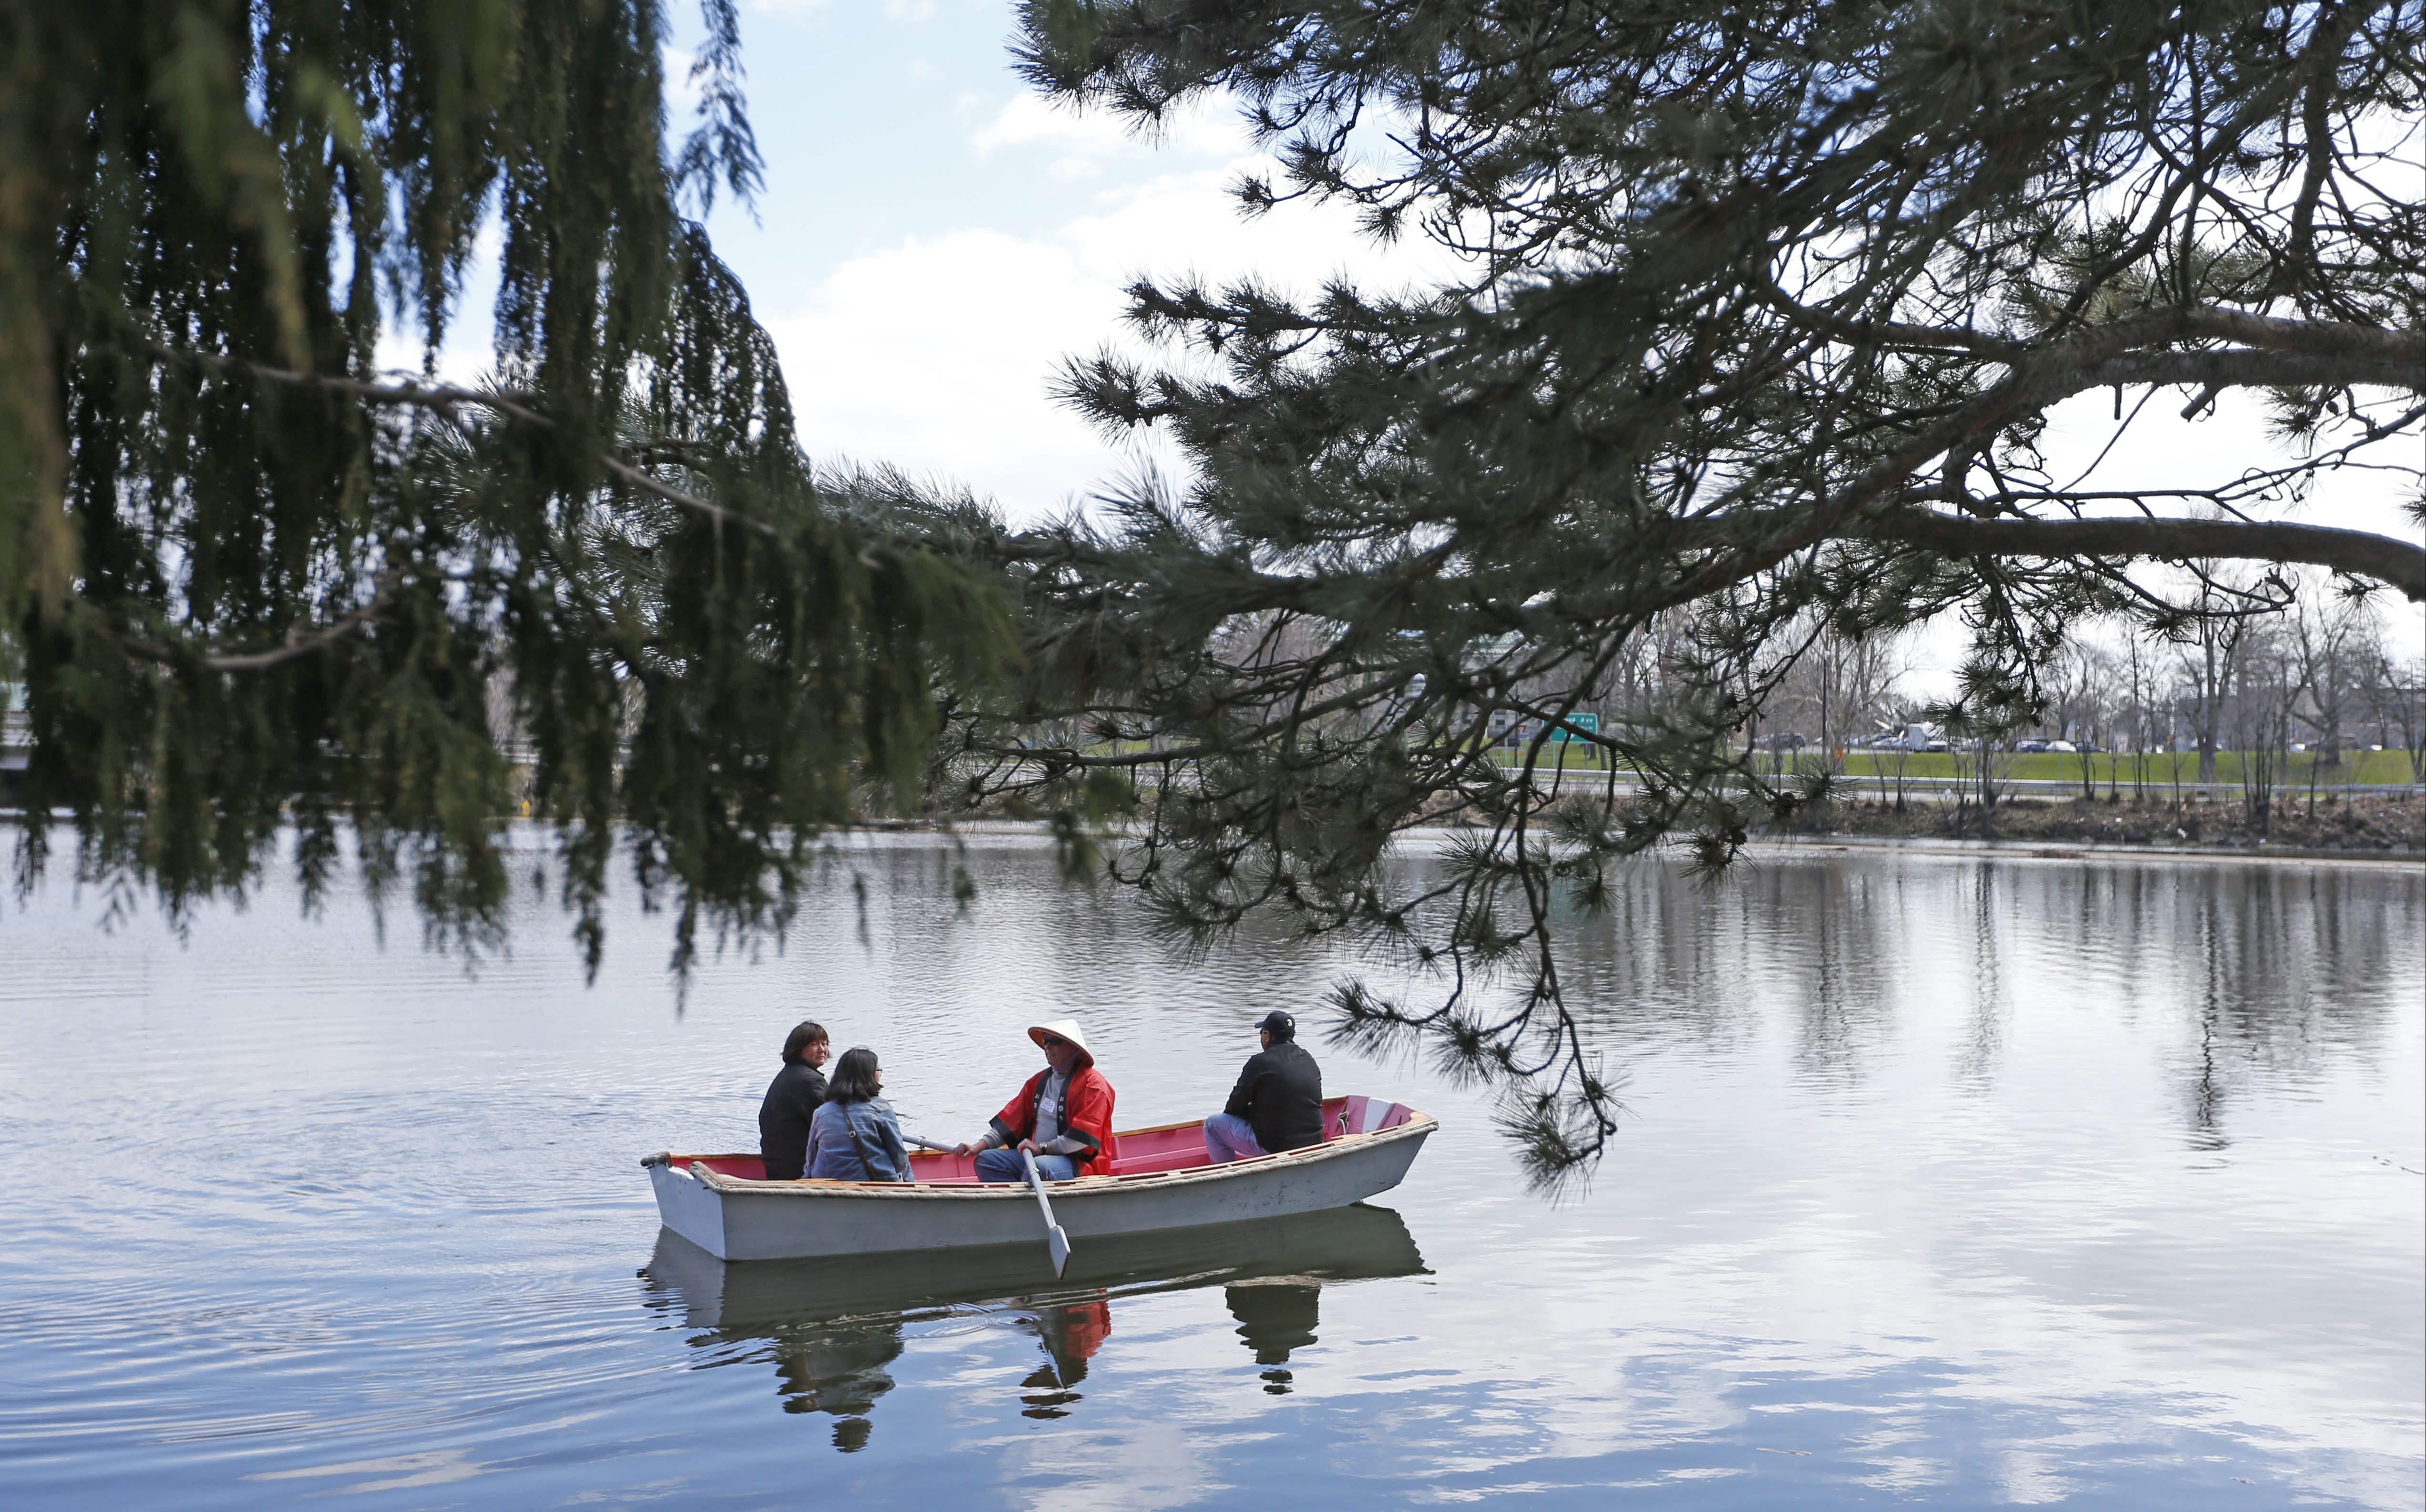 Eager for spring, passengers enjoyed a boat ride on the lake outside the Buffalo History Museum and Japanese Garden during last year's Cherry Blossom Festival in Buffalo.  (Robert Kirkham/Buffalo News)